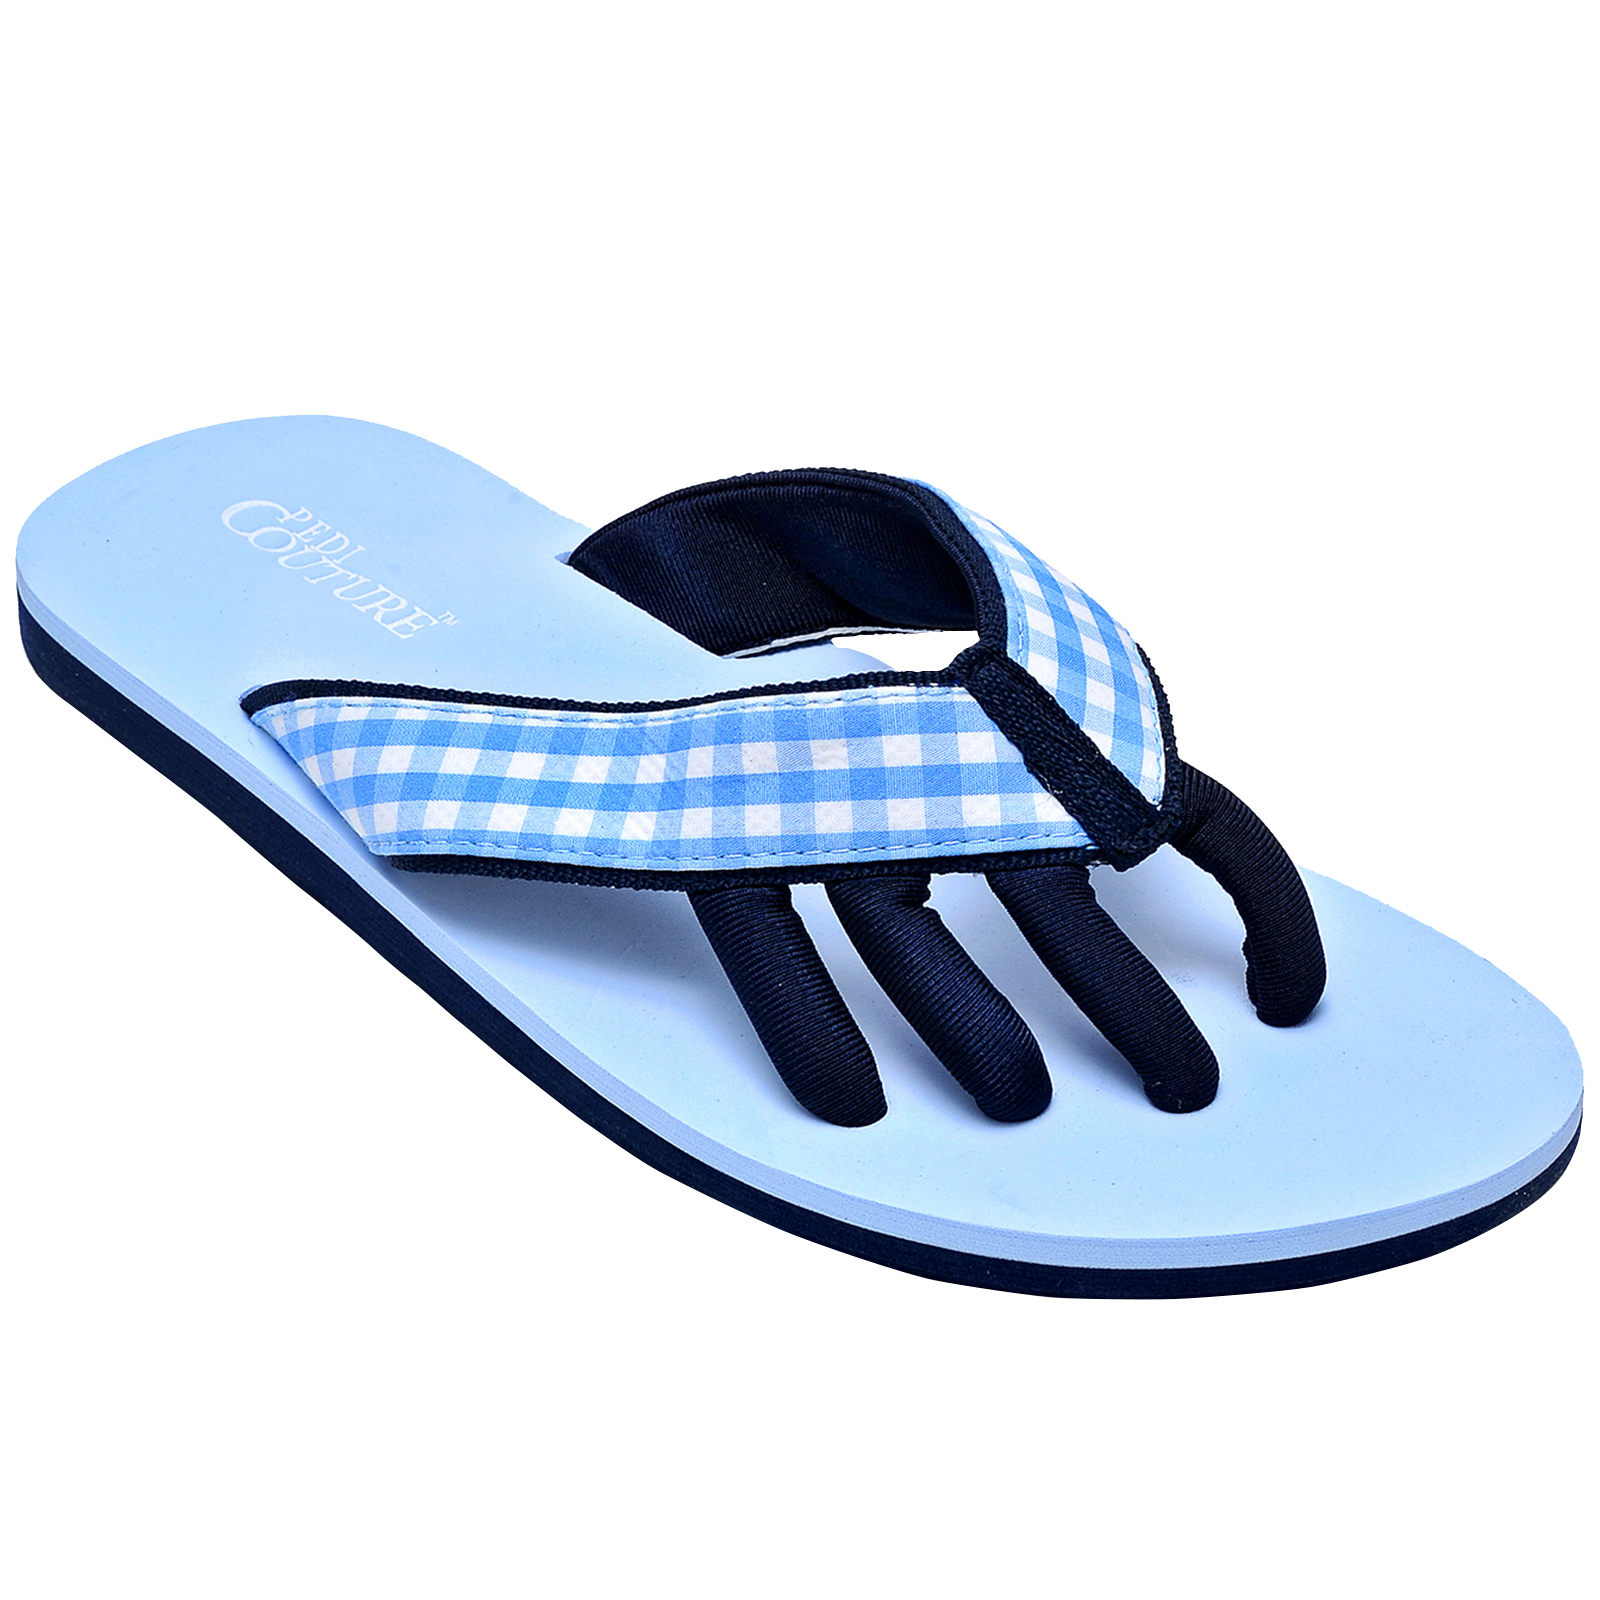 db12759a3 Pedi Couture - PEDI COUTURE NEW Women s Gingham Pedicure Spa Toe ...